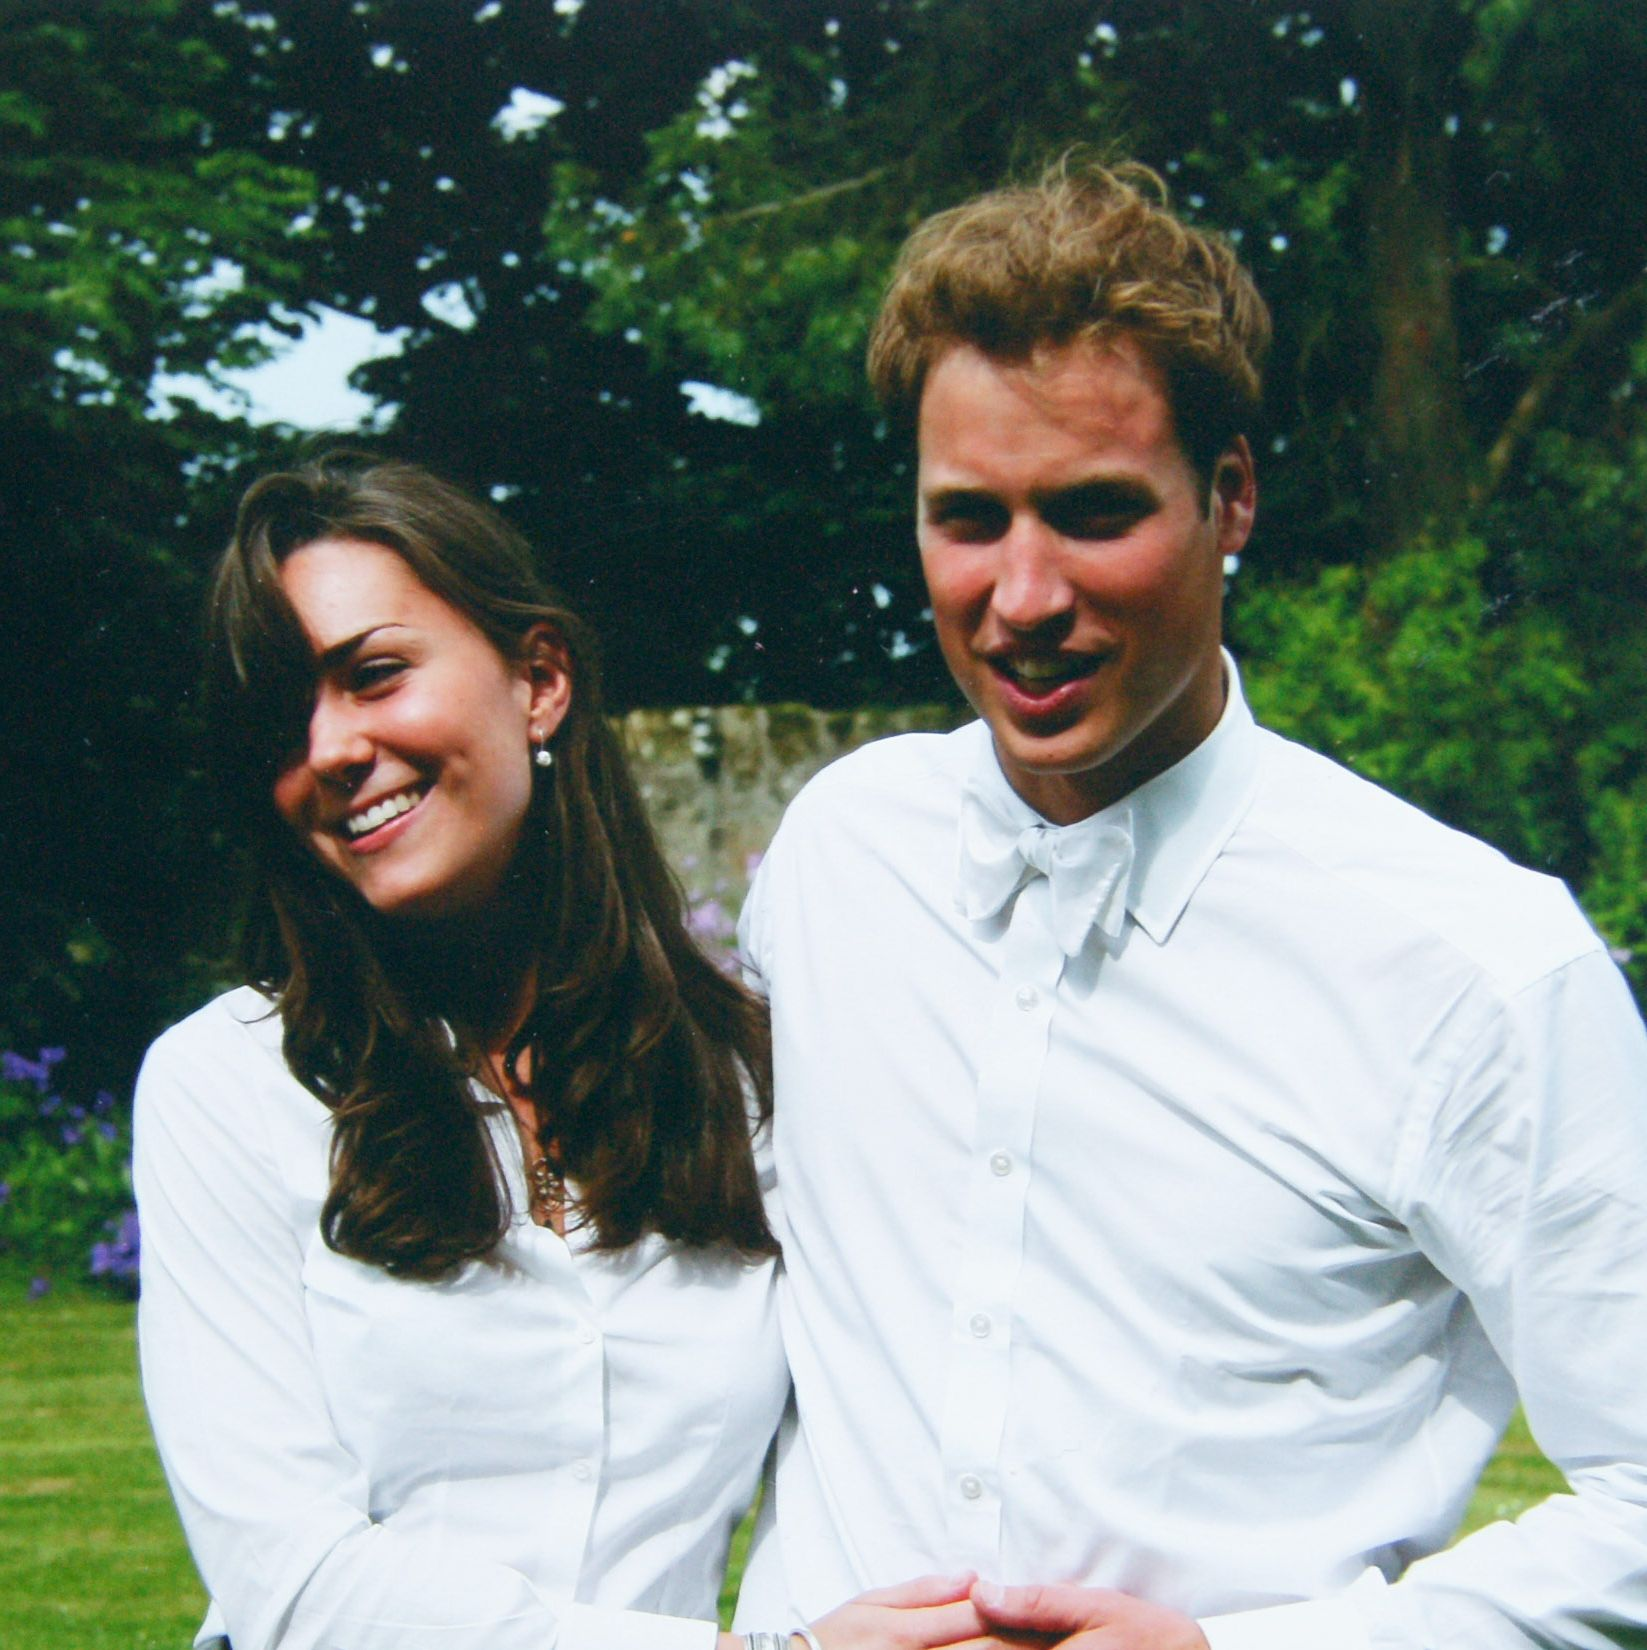 Prince William Cancelled His Christmas Plans With Kate Middleton When They Were Dating